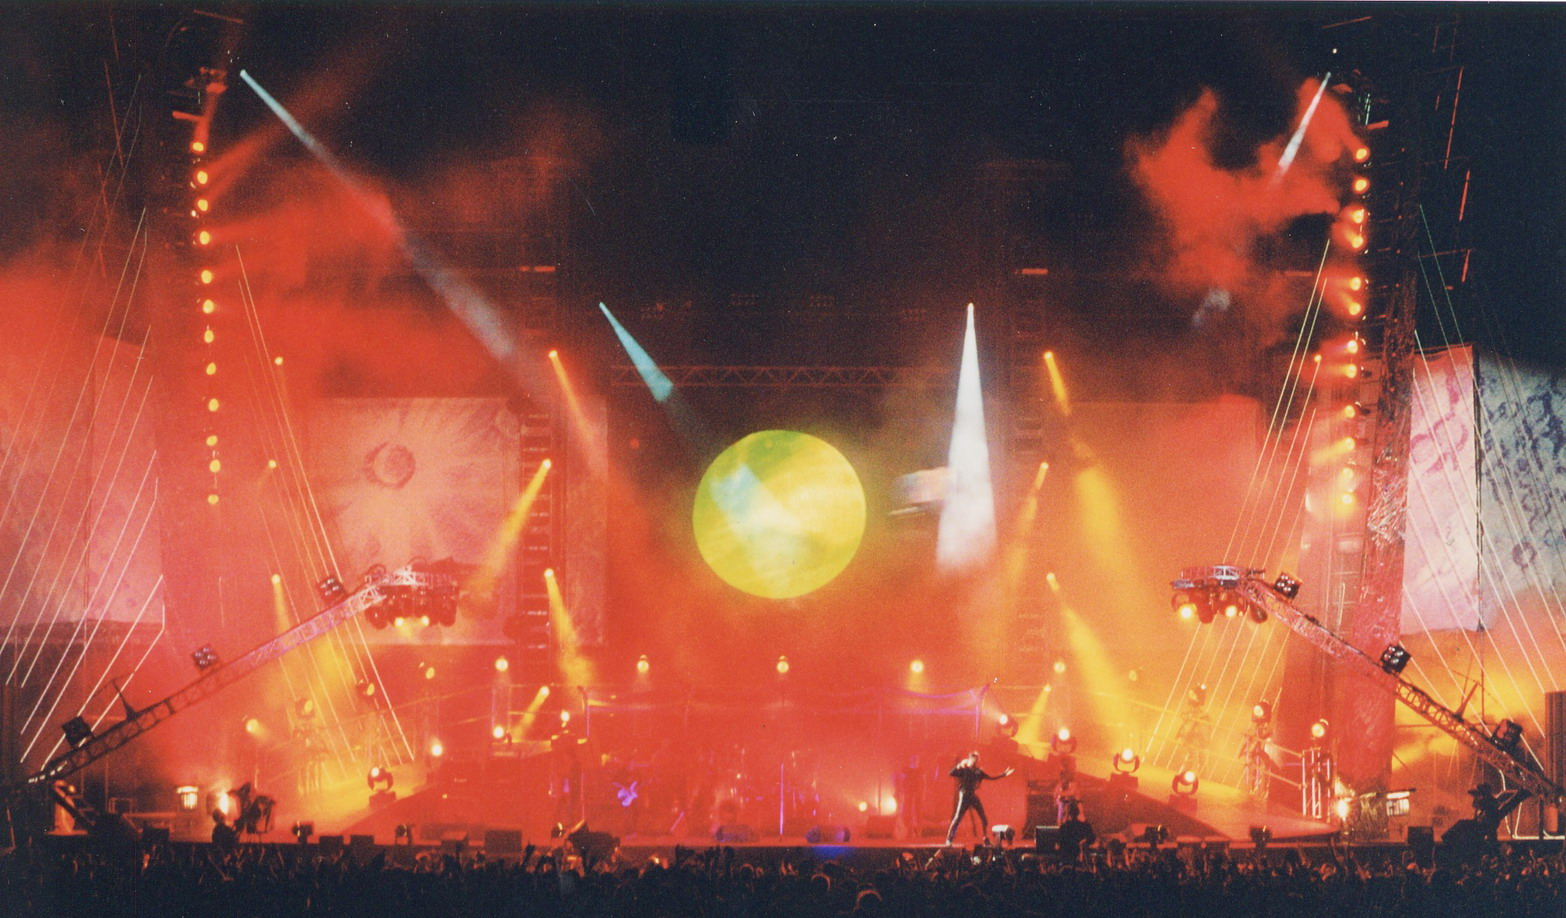 Rewind Vasco Rossi Vasco Rossi Rewind Tour 1999 Giovanni Pinna Lighting Designer